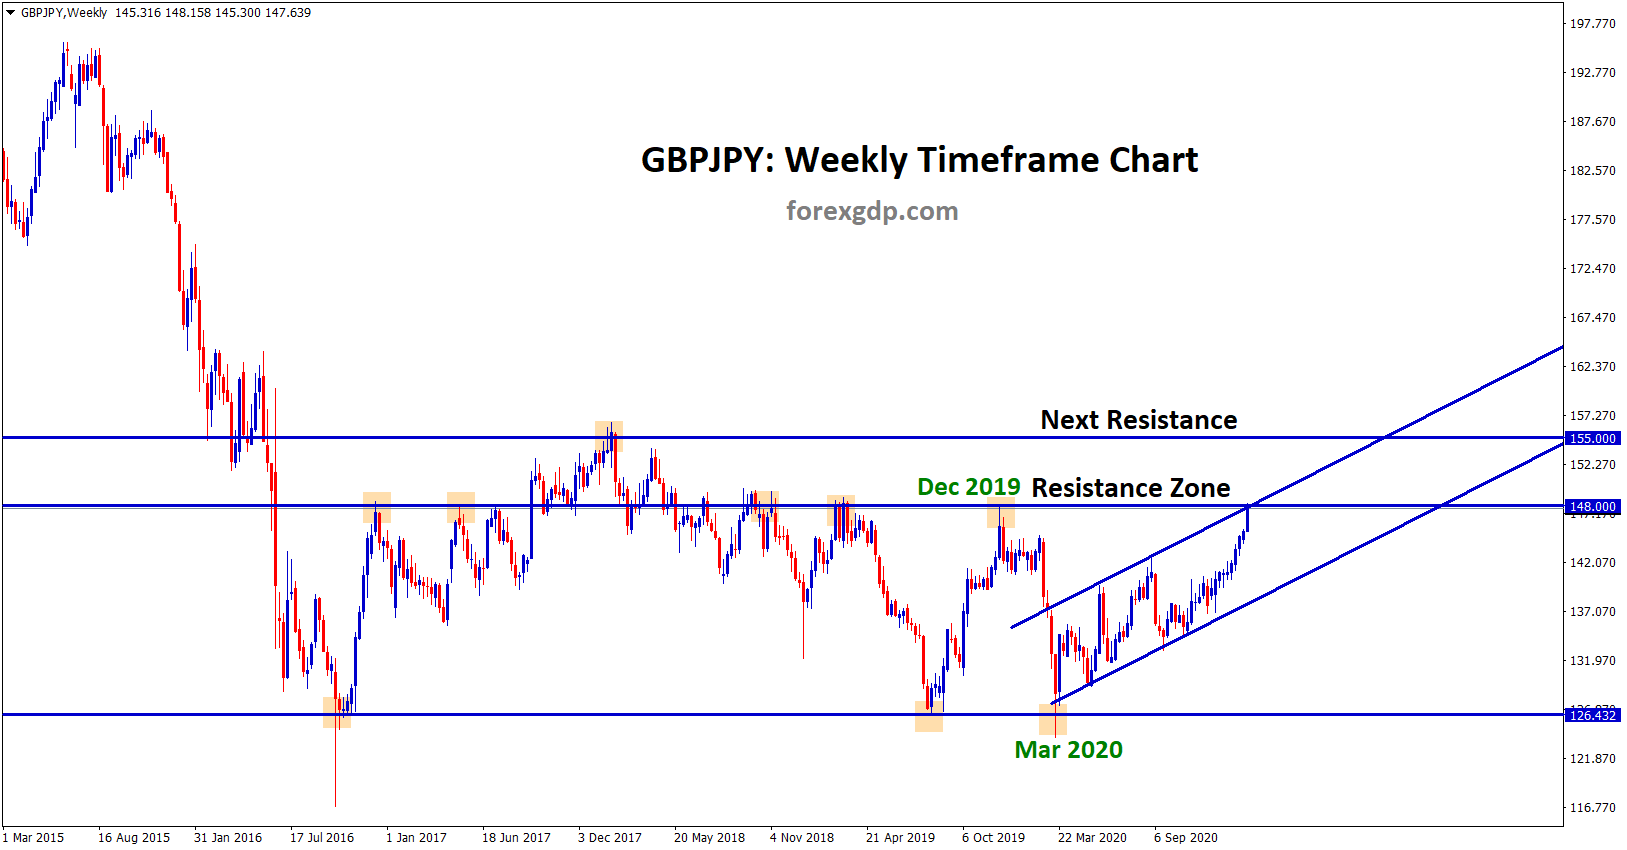 gbpjpy has reached the resistance zone in the weekly chart